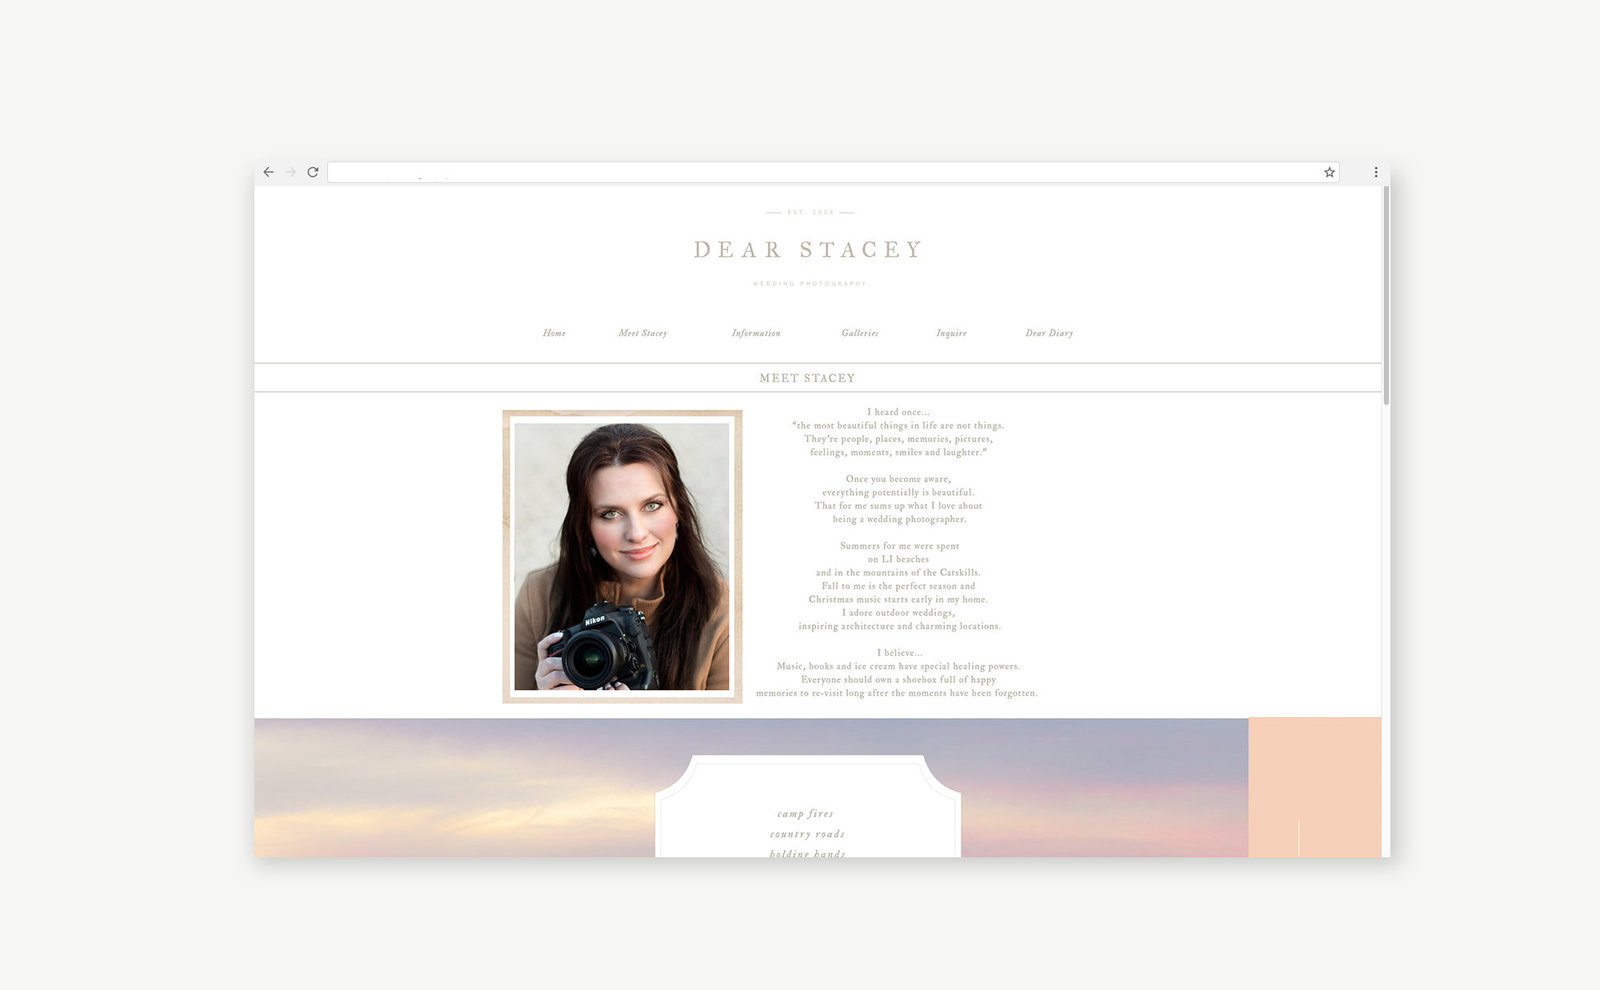 branding-for-photographers-web-design-dear-stacey-03